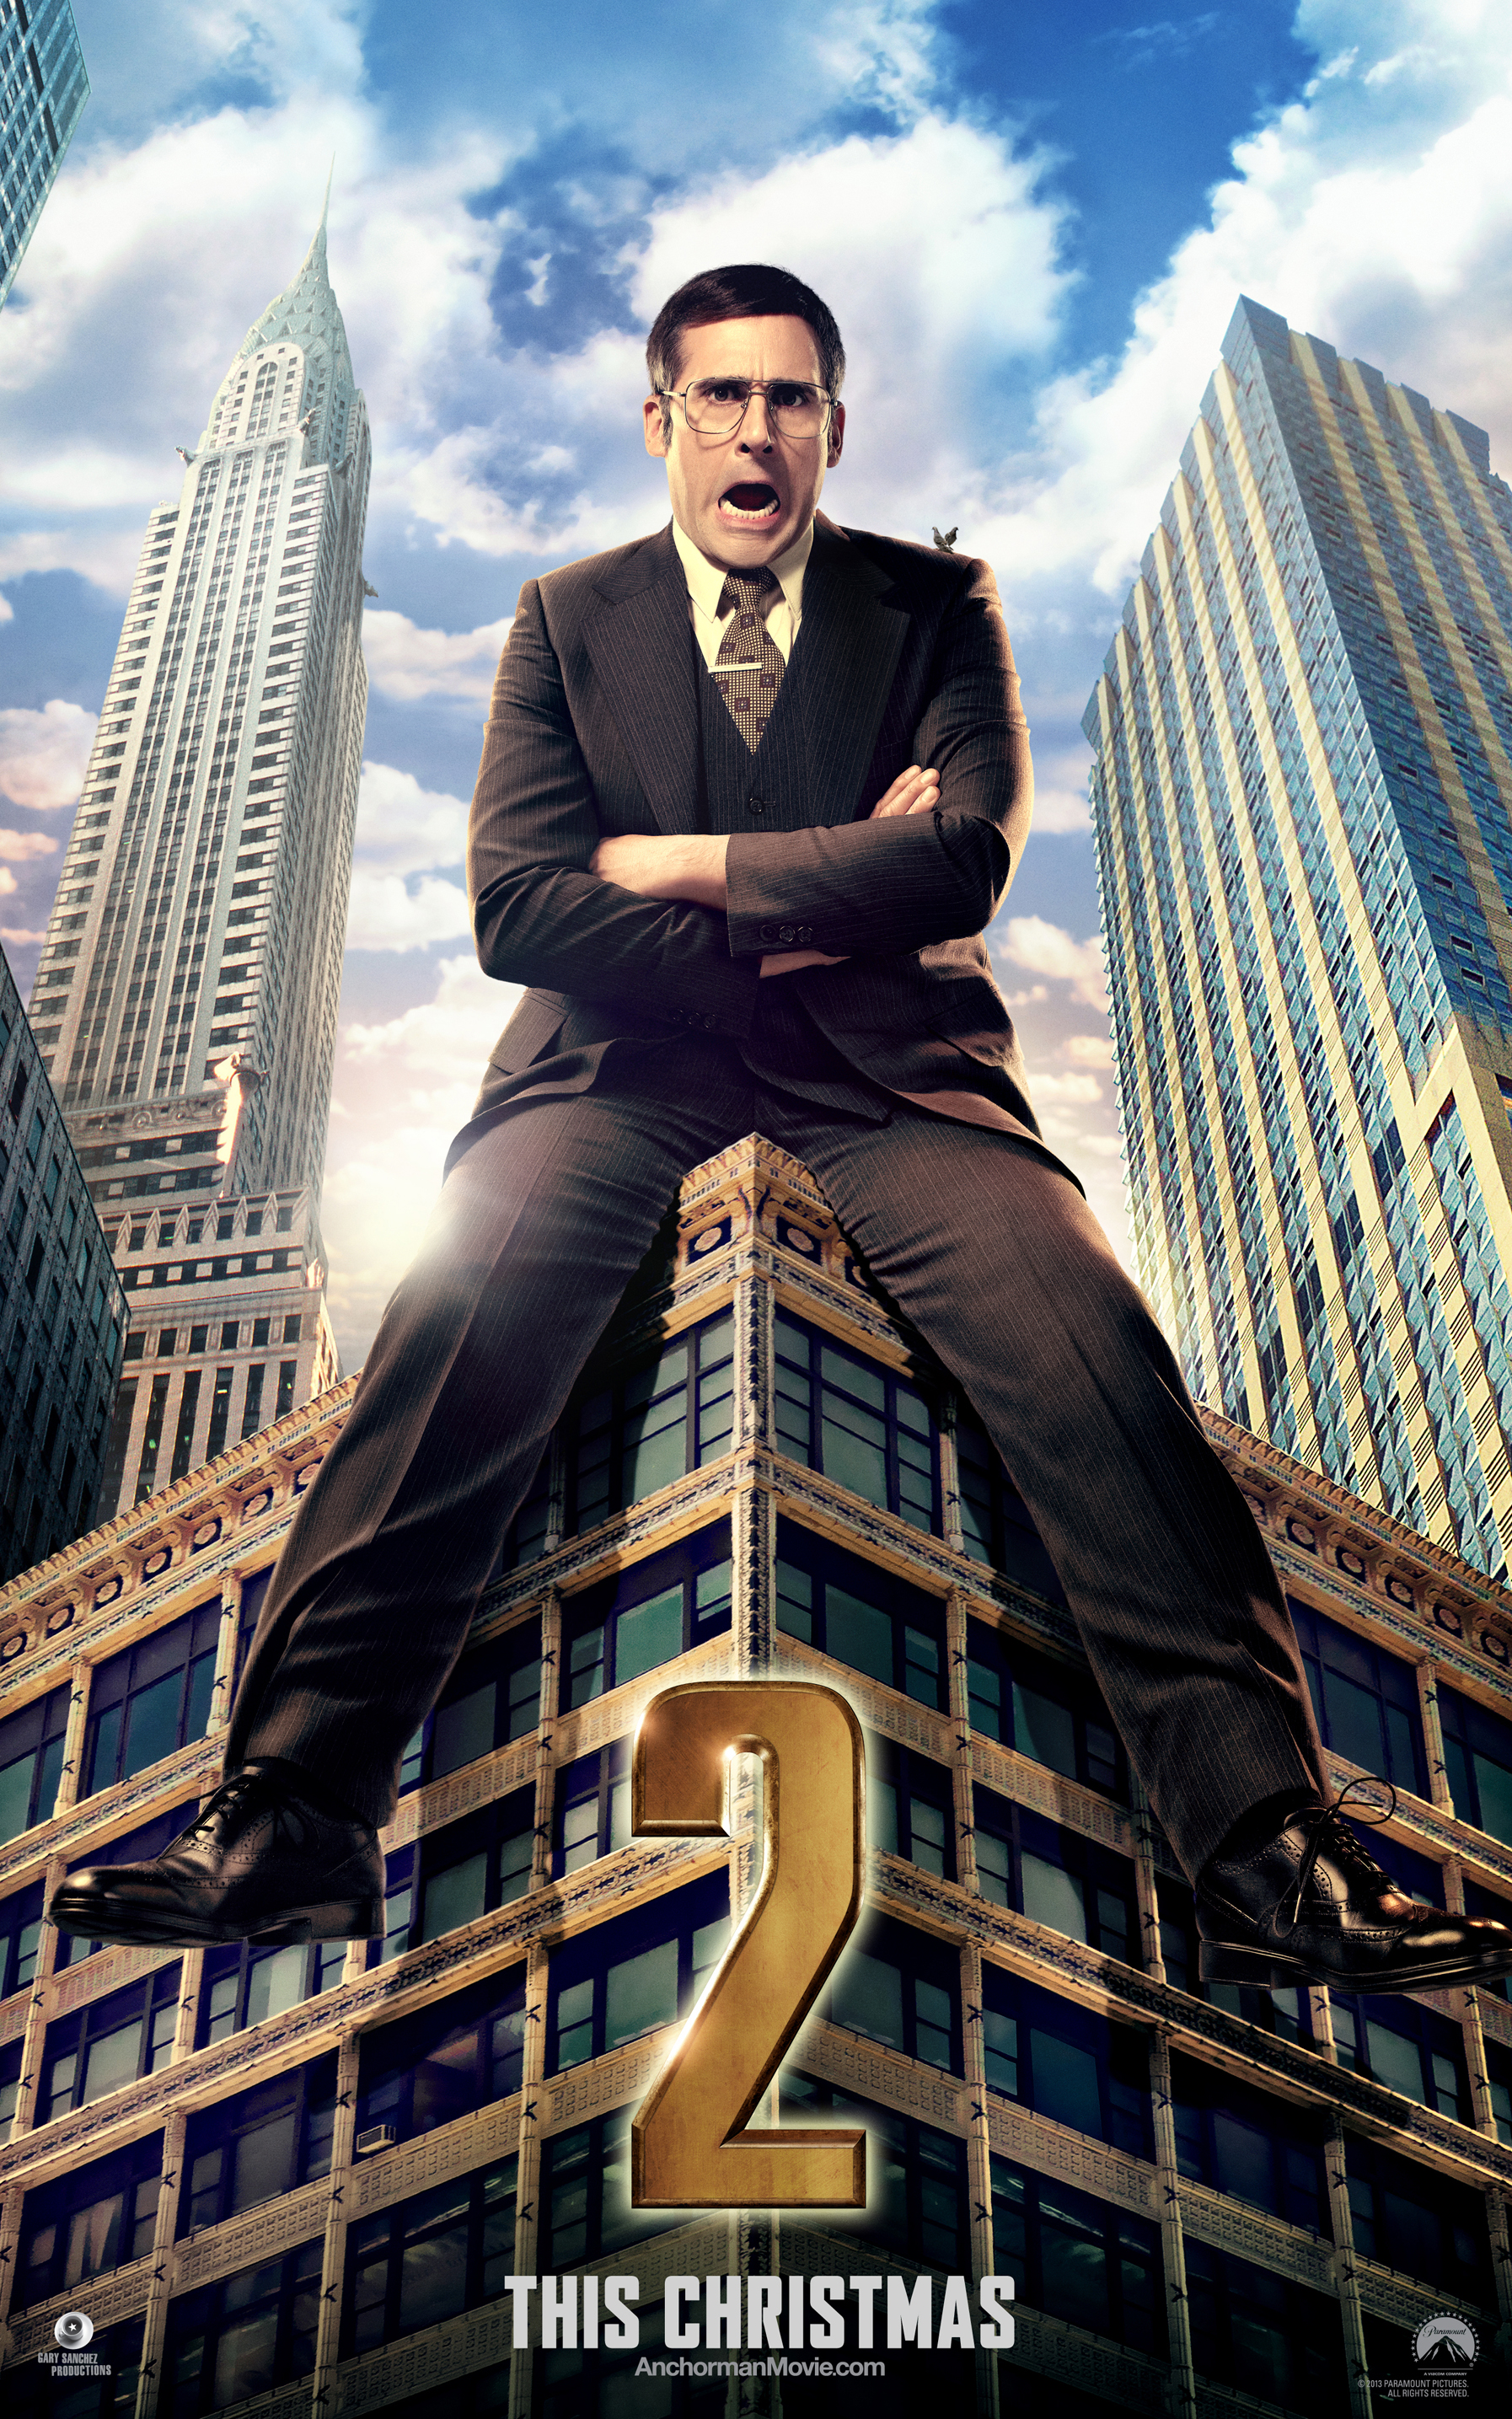 anchorman2brickonline11 Anchorman 2: The Legend Continues Builds Legacy with Character Posters